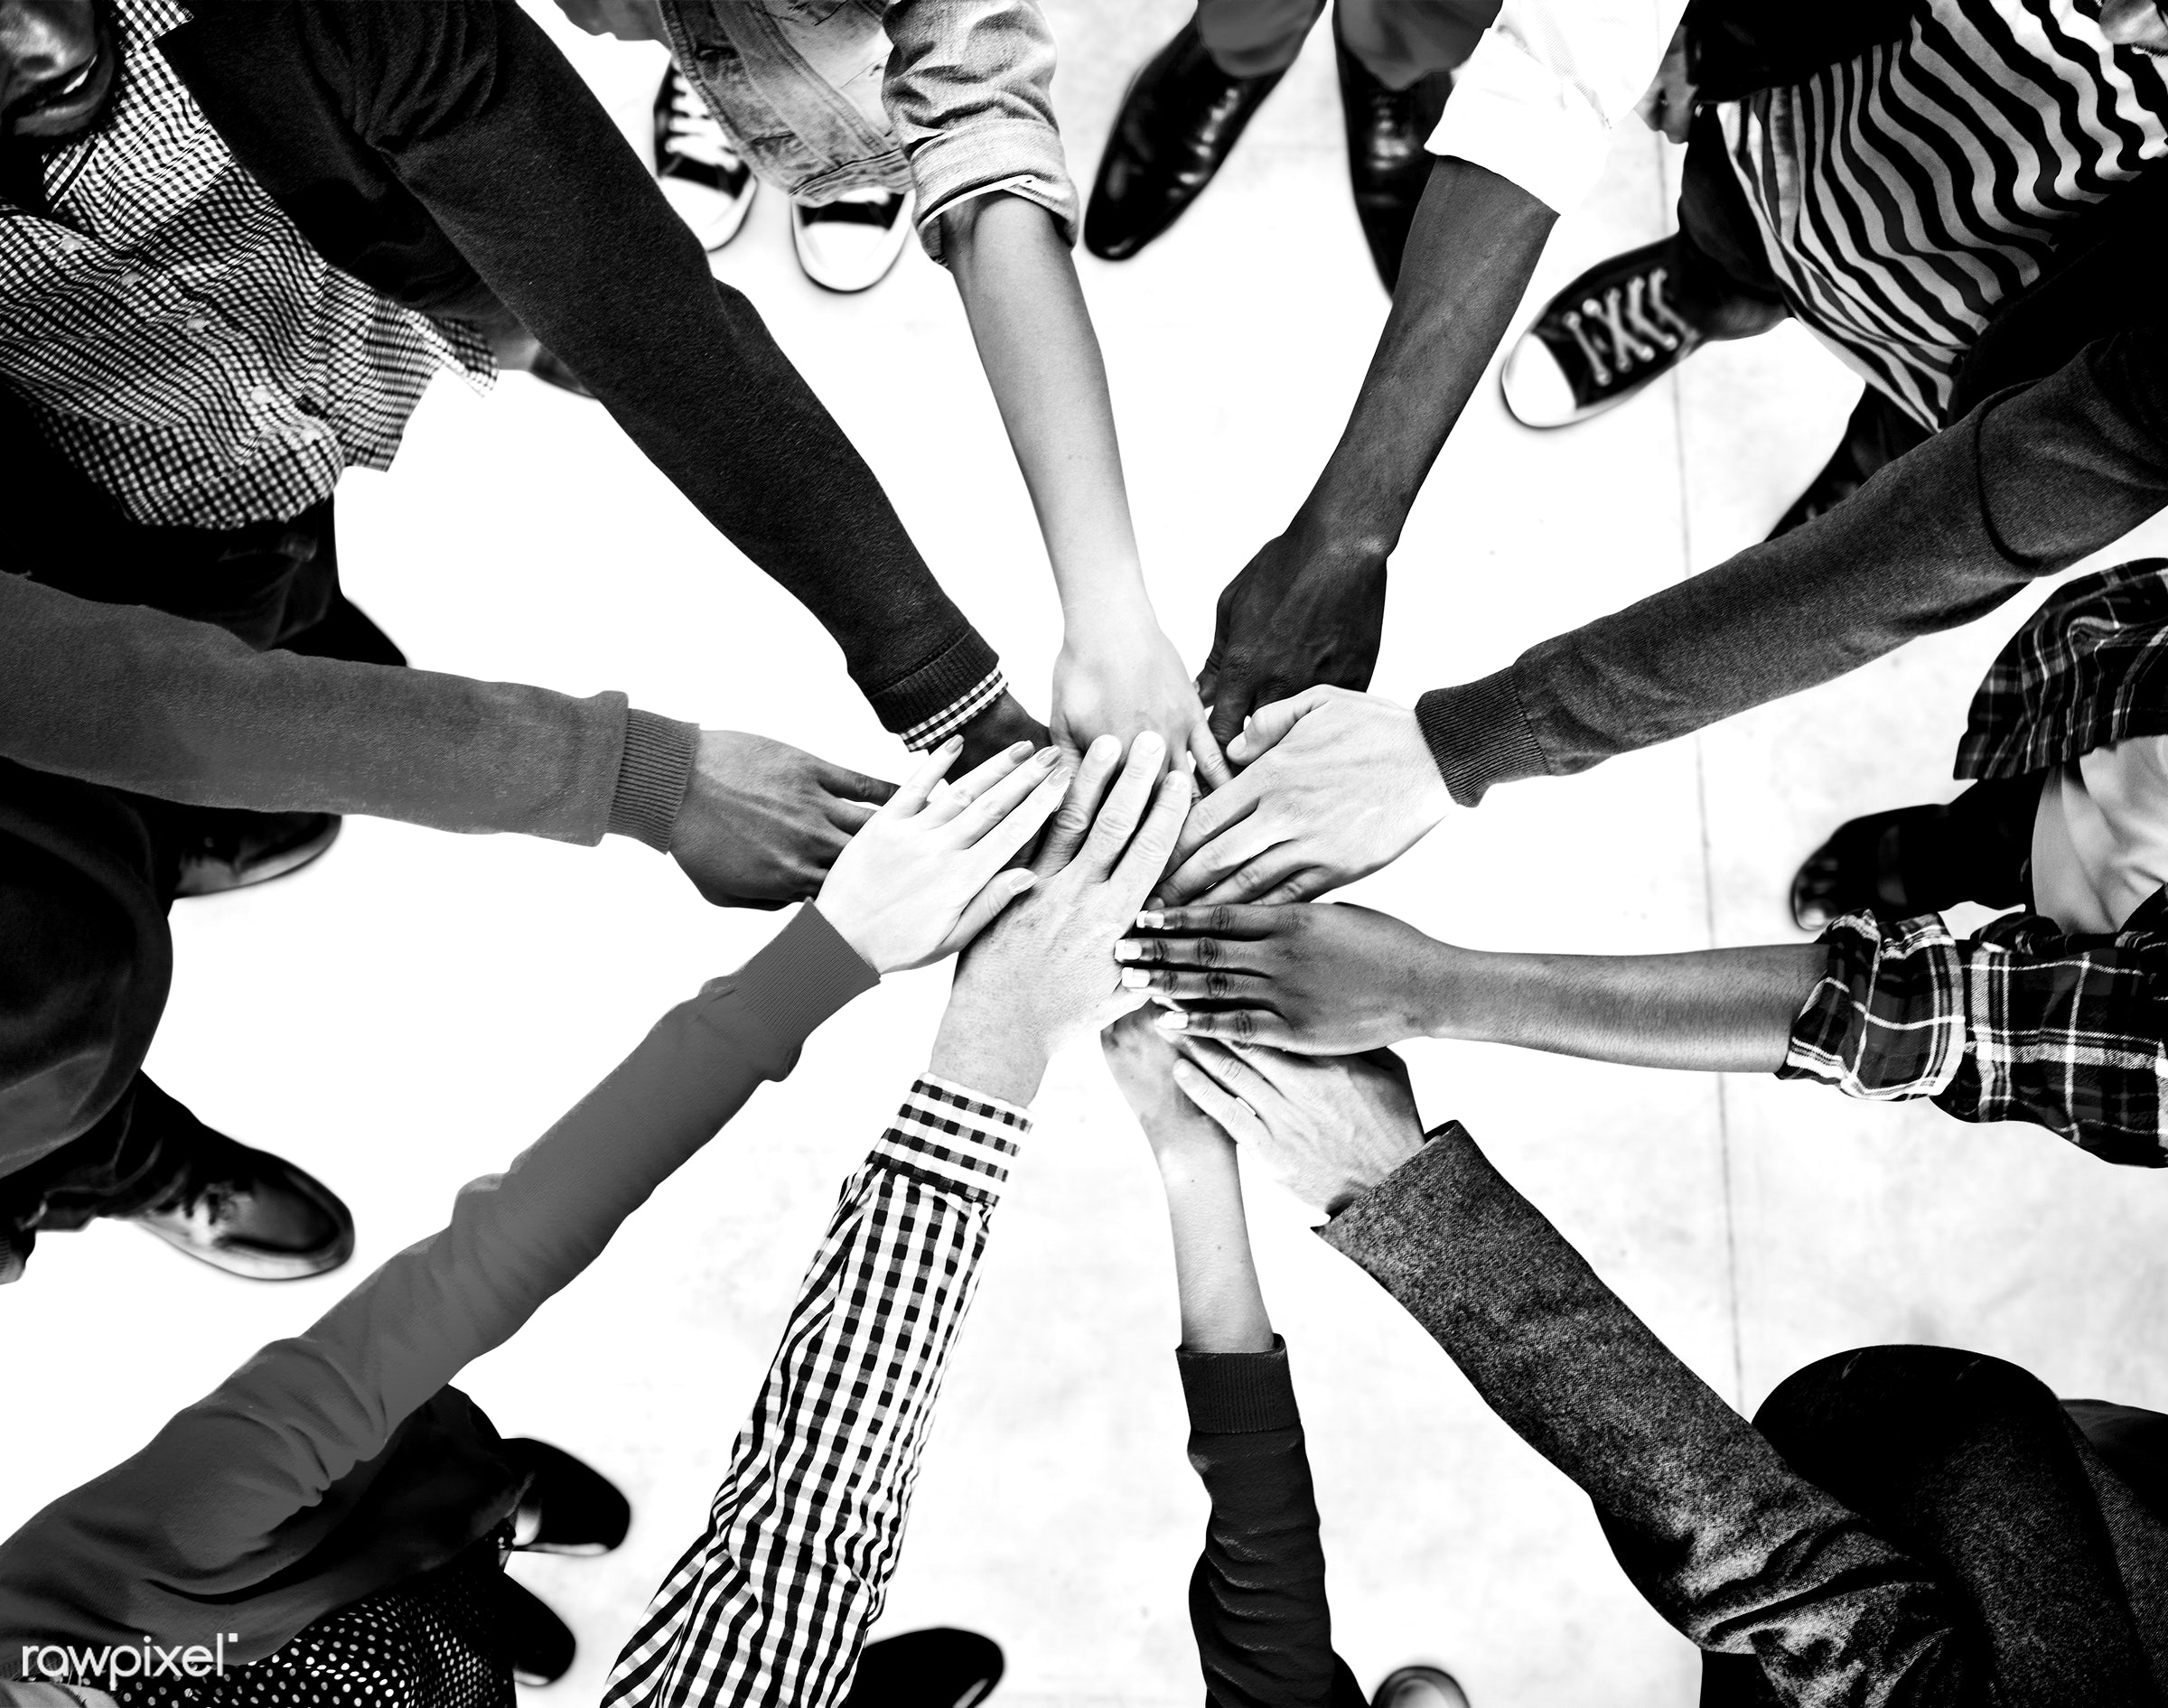 aerial view, agreement, assistance, casual, cheering, collaboration, colorful, community, connection, cooperation, diverse,...